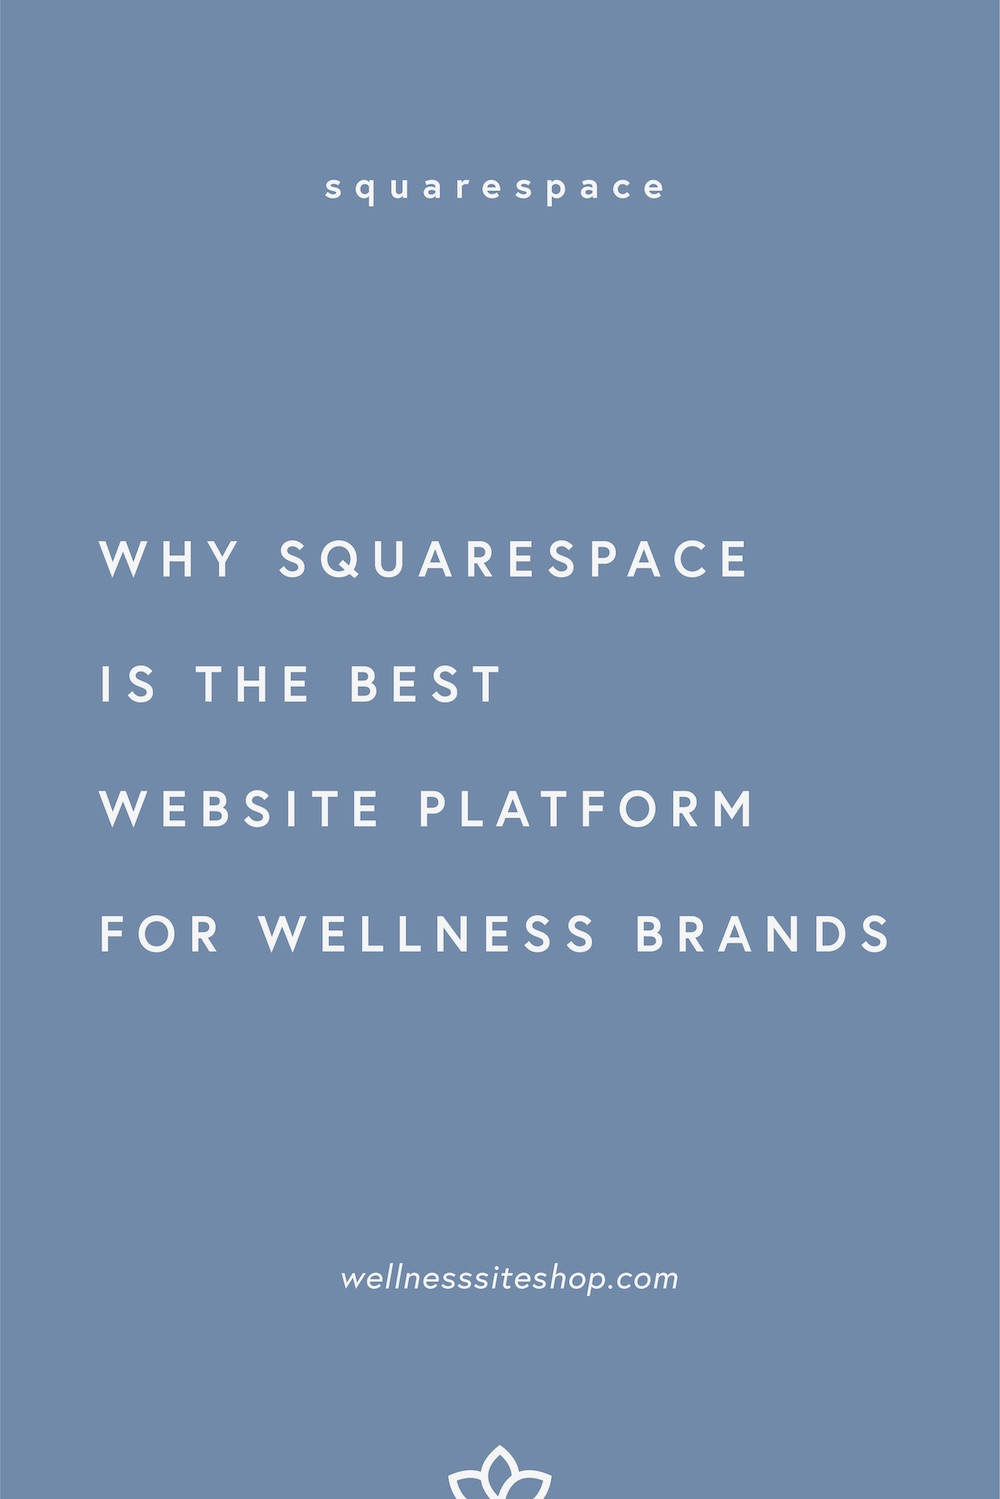 2-why squarespace is the best website platform for wellness brands.jpg